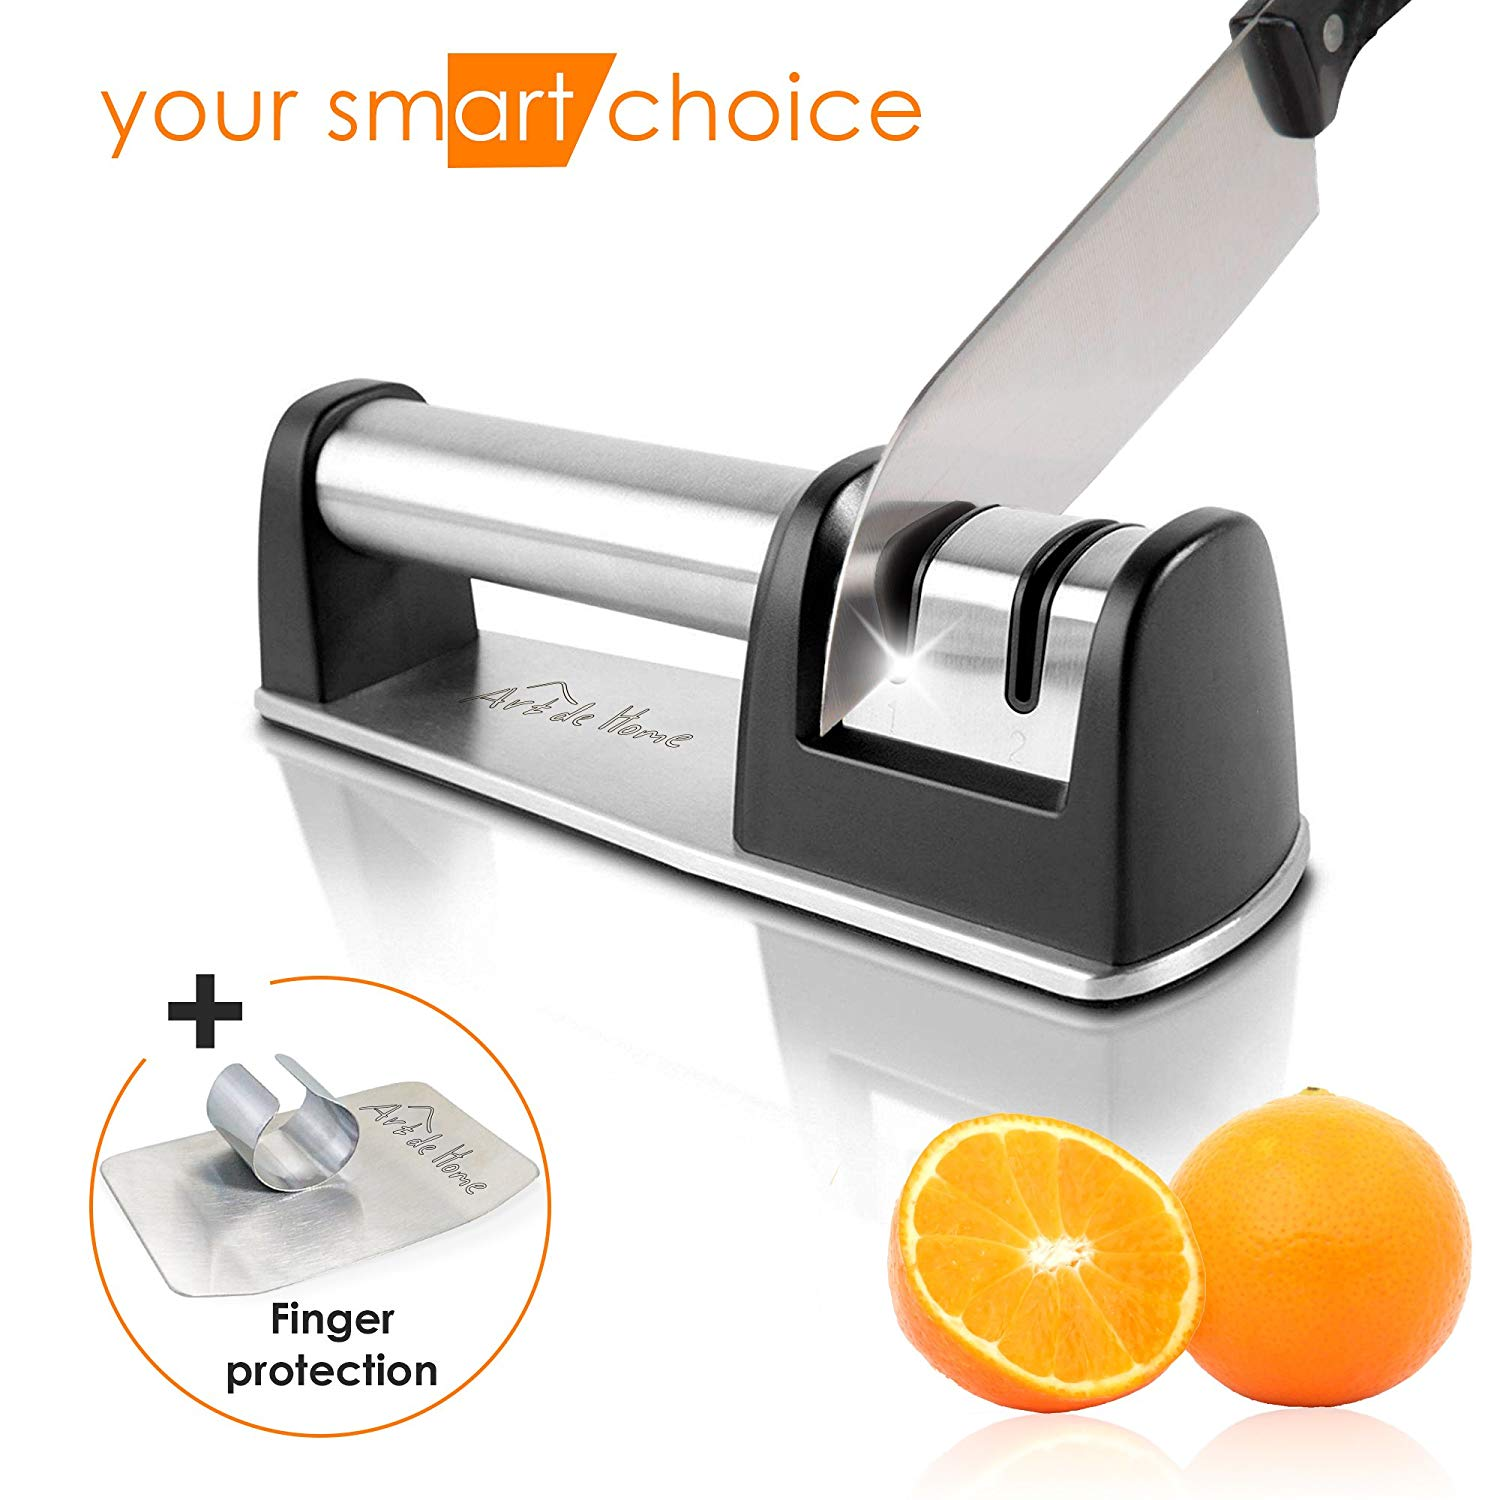 Kitchen Knife Sharpener - Ceramic and Diamond Knife Sharpener - Universal Culinary Knife Sharpener - Kitchen Knives Sharpener - 2-stage Knife Sharpener